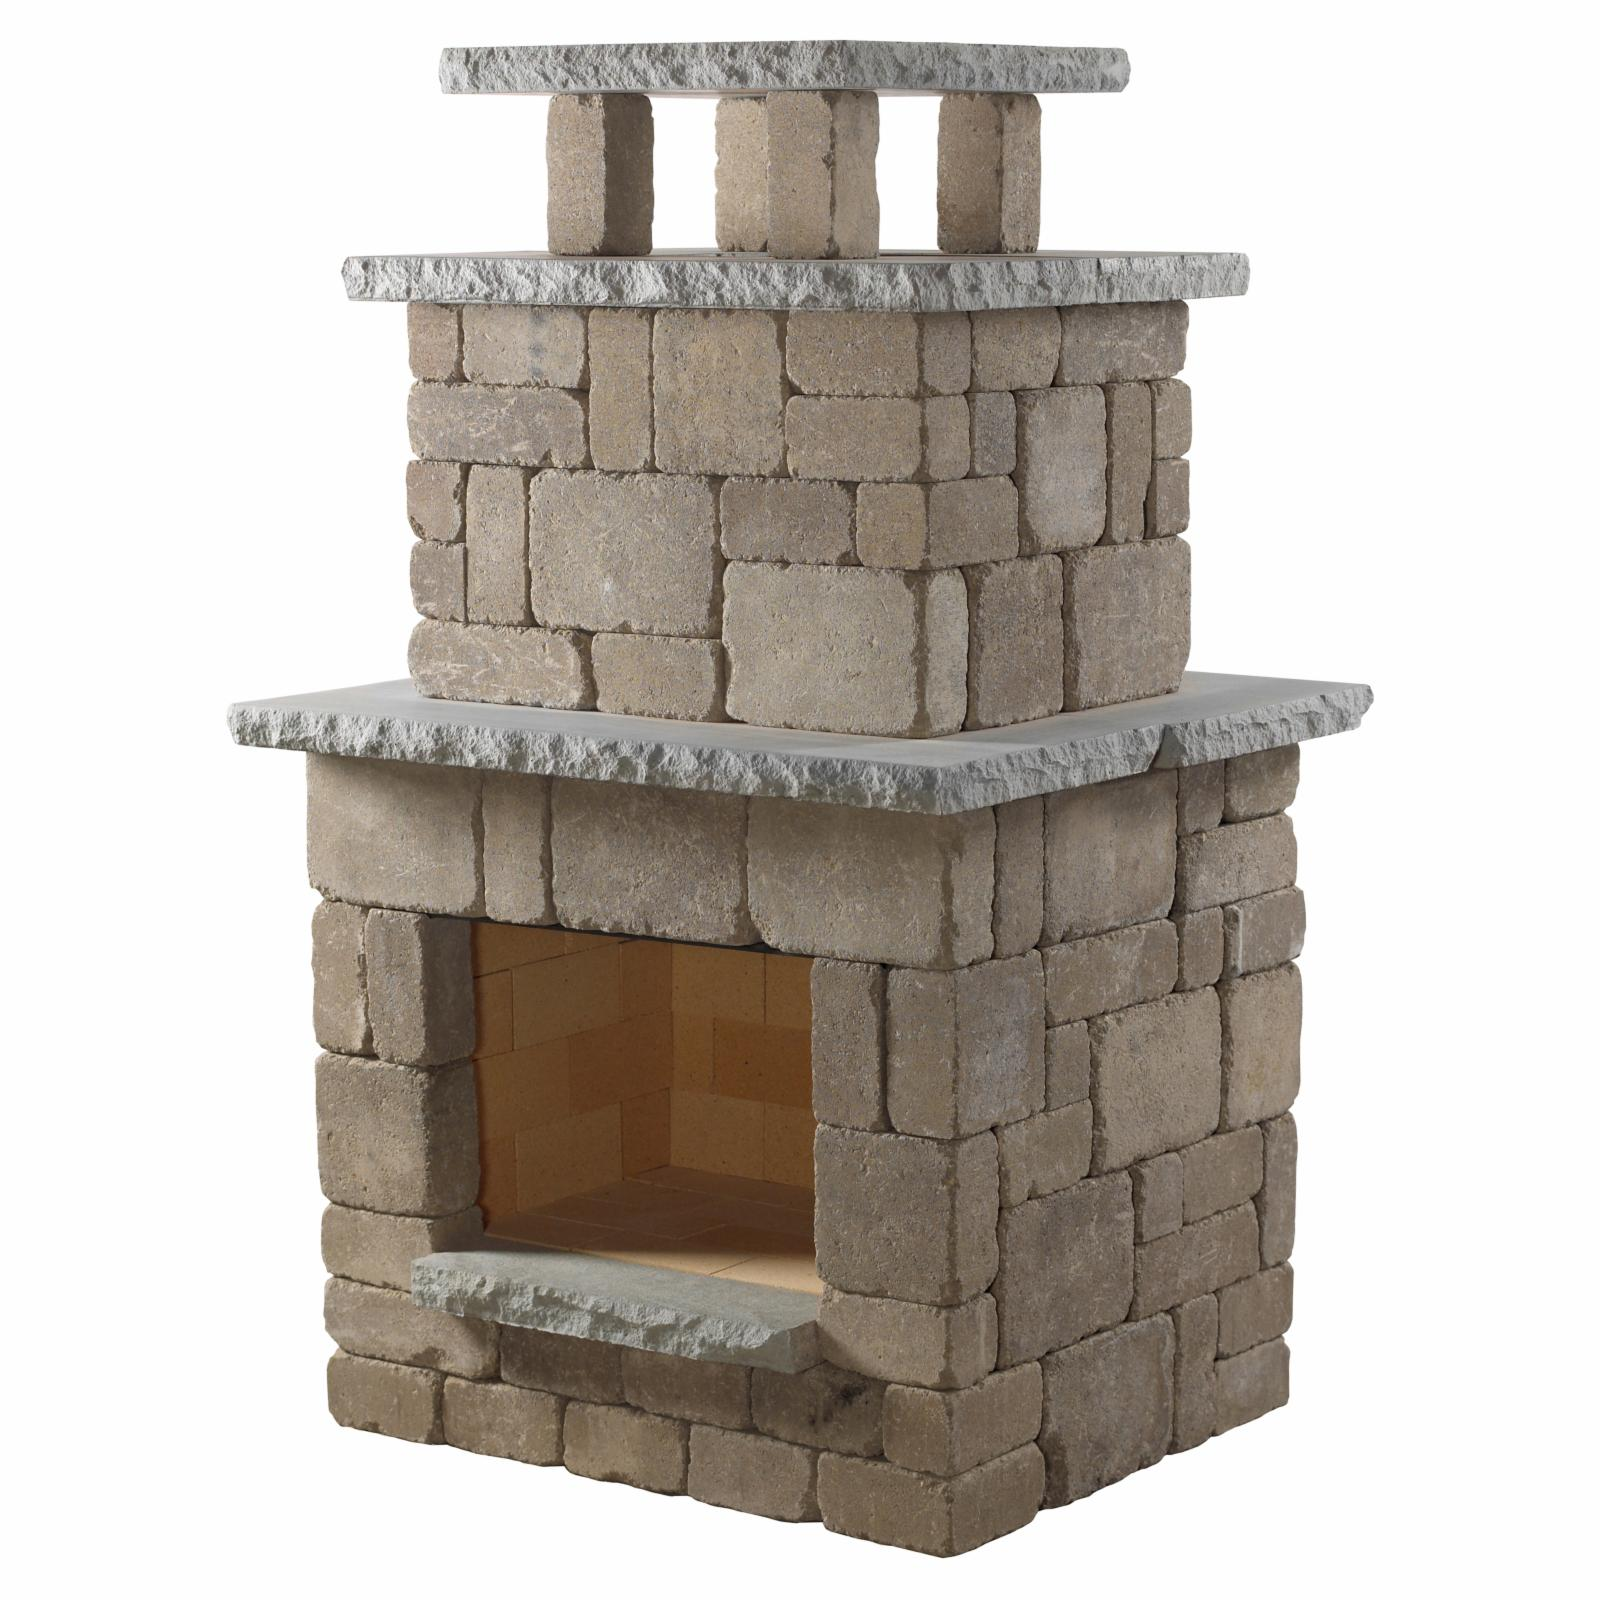 Necessories Compact Outdoor Fireplace Santa Fe - 4200040